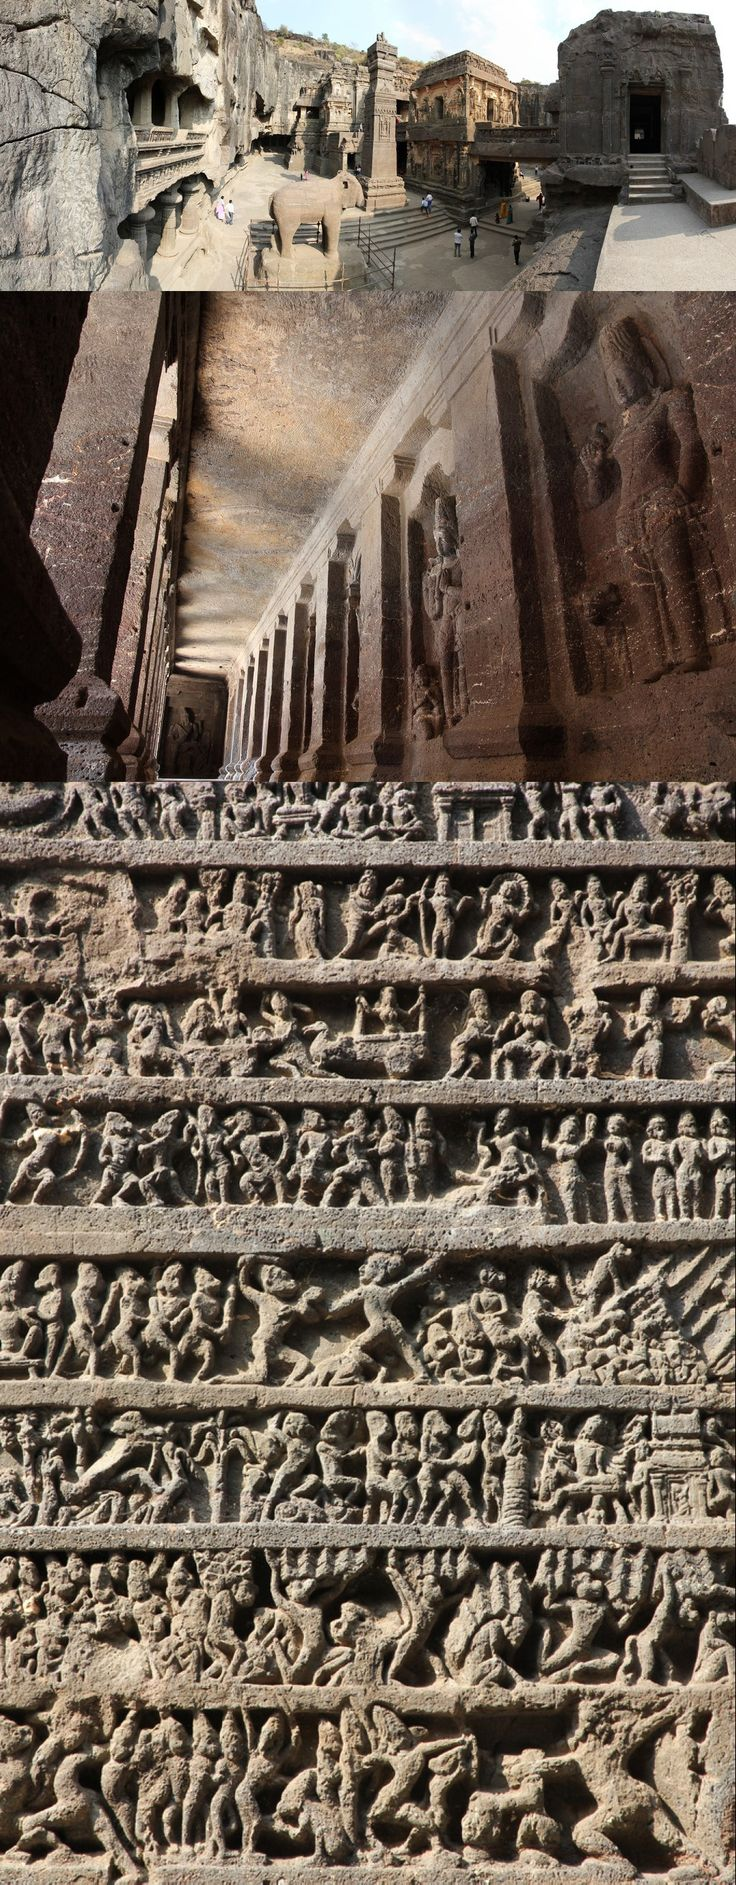 via Ancient Art http://ancientart.tumblr.com/post/124786321643/kailash-temple-ellora-caves-india-dated-from -------   Kailash Temple, Ellora Caves, India, dated from 600 to 1000 AD. There are 34 major caves at Ellora -Cave 16, as shown here, is the Kailasa Temple, a masterpiece of rock-cut architecture and sculpture.  Photos courtesy of Kirk Kittell https://www.flickr.com/photos/kittell/sets/72157627113035735 .